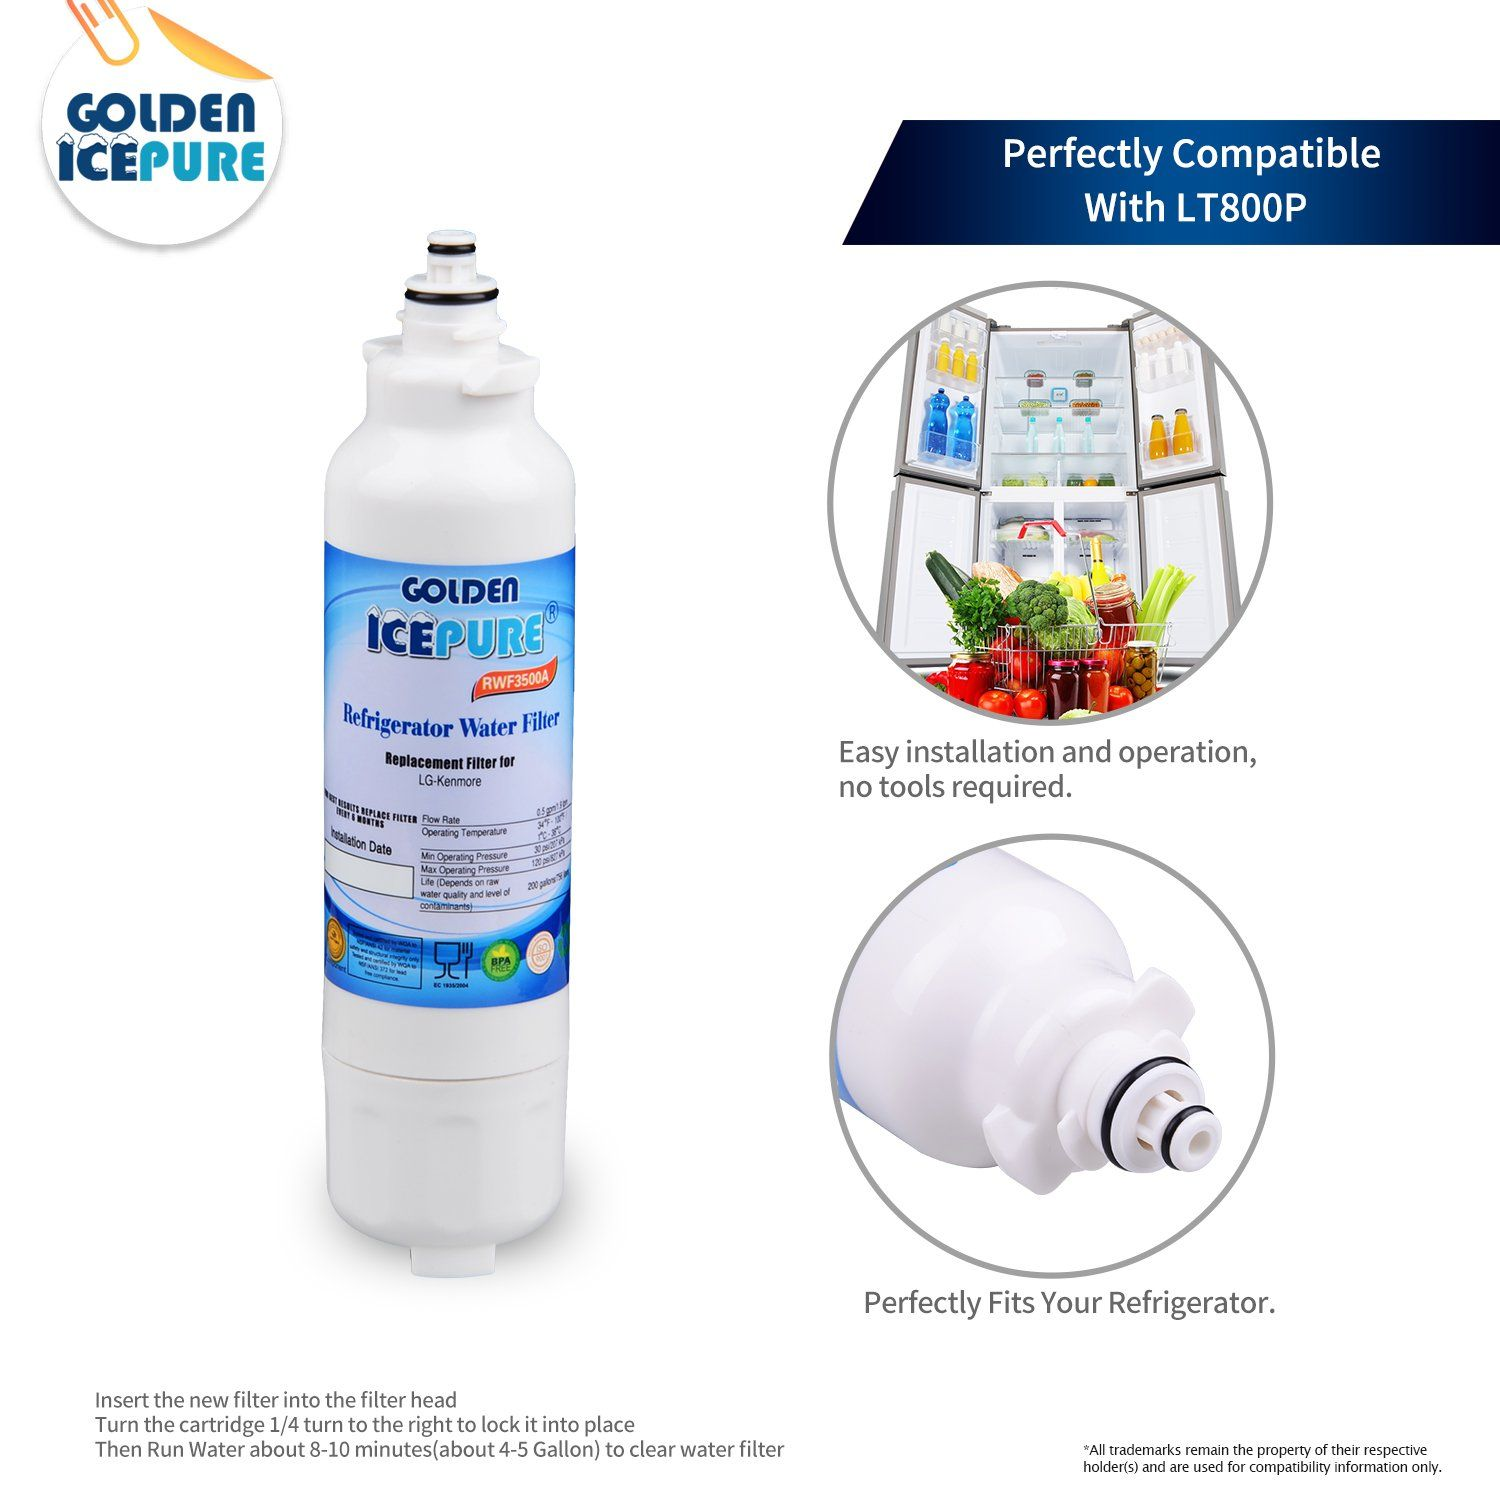 Golden Icepure LT800P Refrigerator Water Filter Replacement for LG